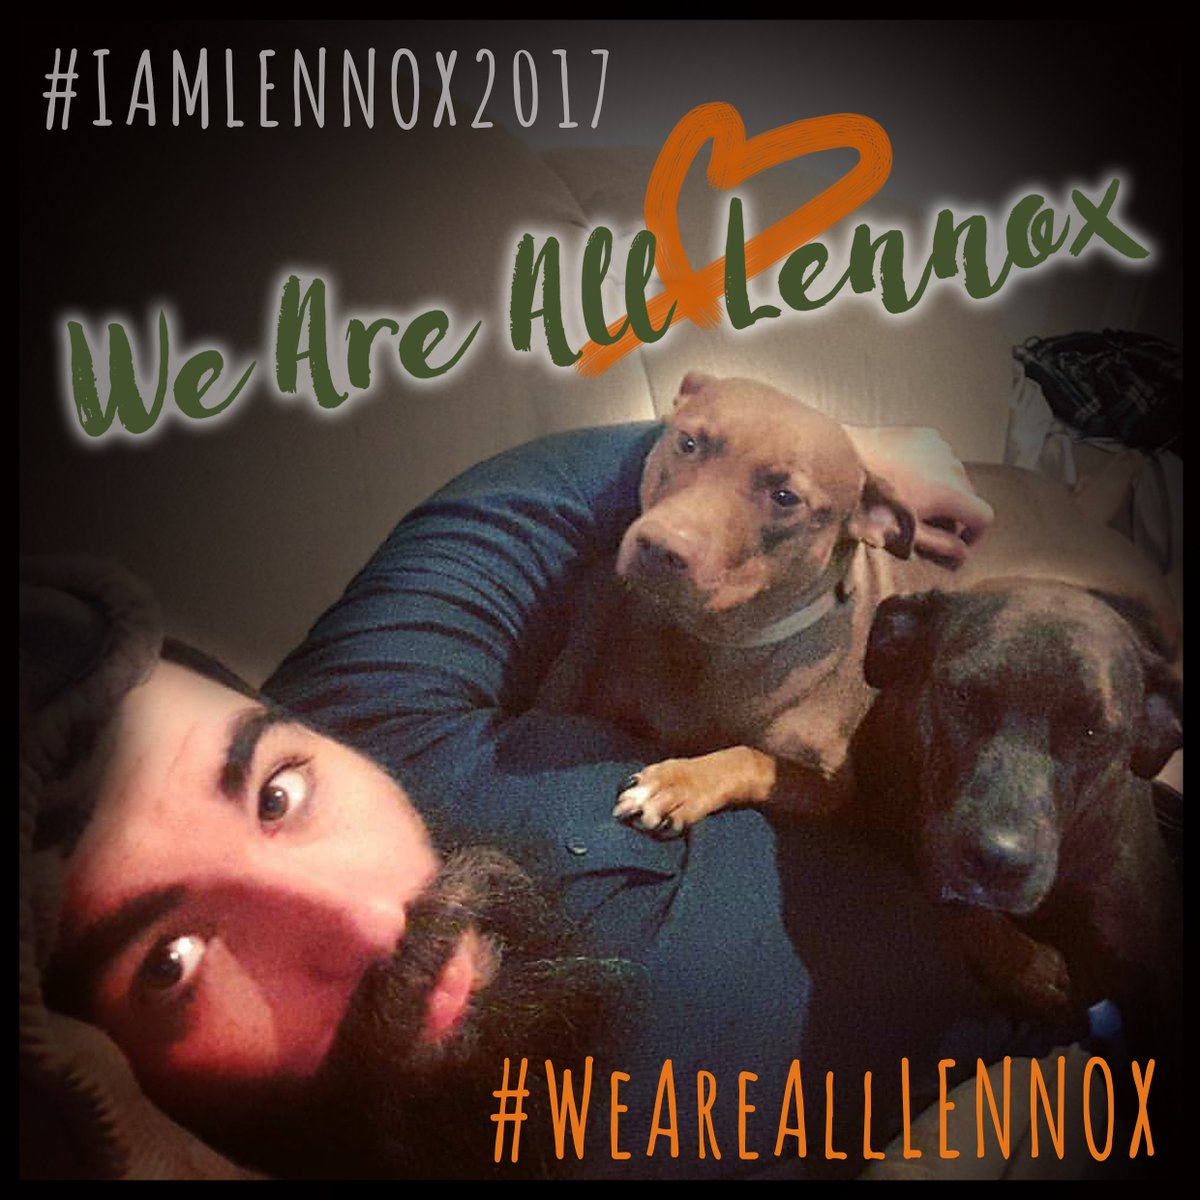 My dogs are a part of me &amp; #BSL hurts us all #EndBSL #WeAreAllLennox #WUABSL #GetTough #DontBullyMyBreed #SpreadLove #polqc #NoToBill128<br>http://pic.twitter.com/WWl0tTHN4T